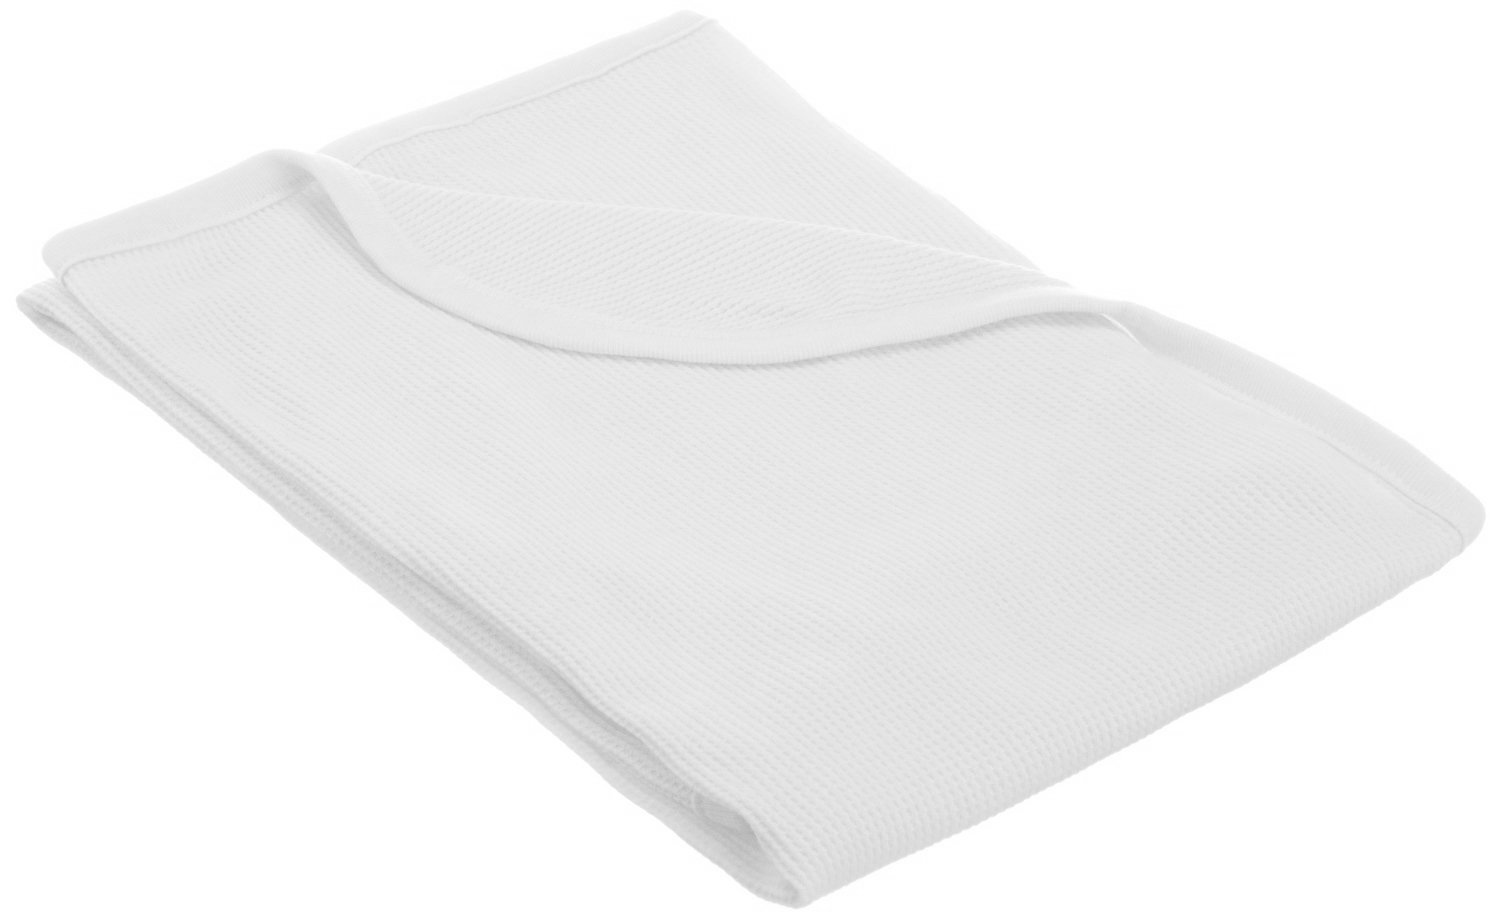 TL Care 100% Natural Cotton Swaddle/Thermal Blanket, White, Soft Breathable, for Boys and Girls